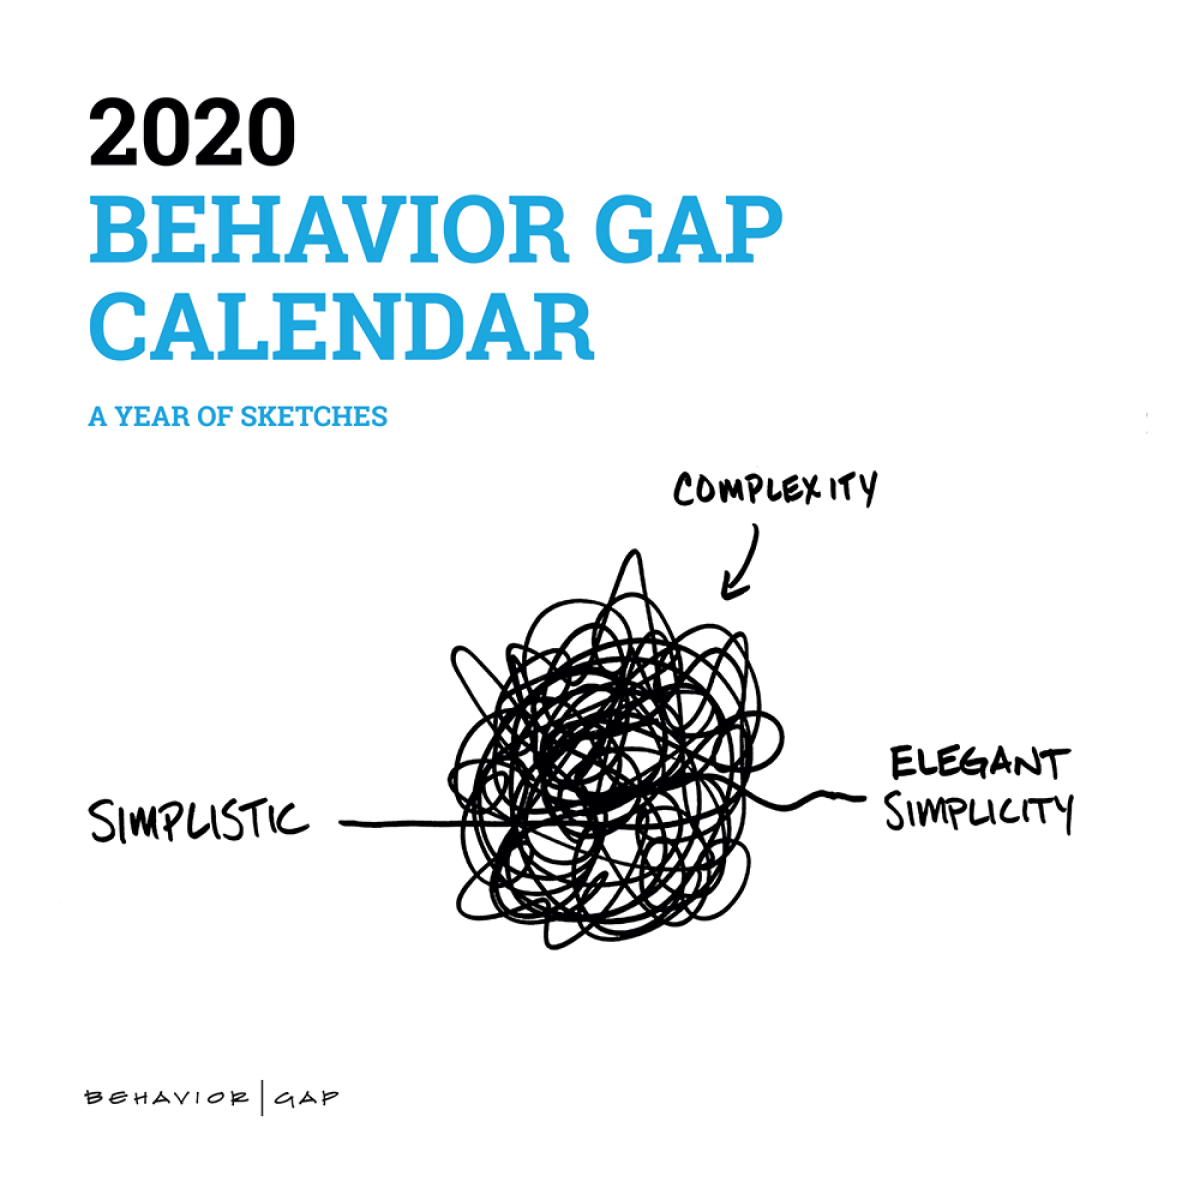 2020 Behavior Gap Calendar